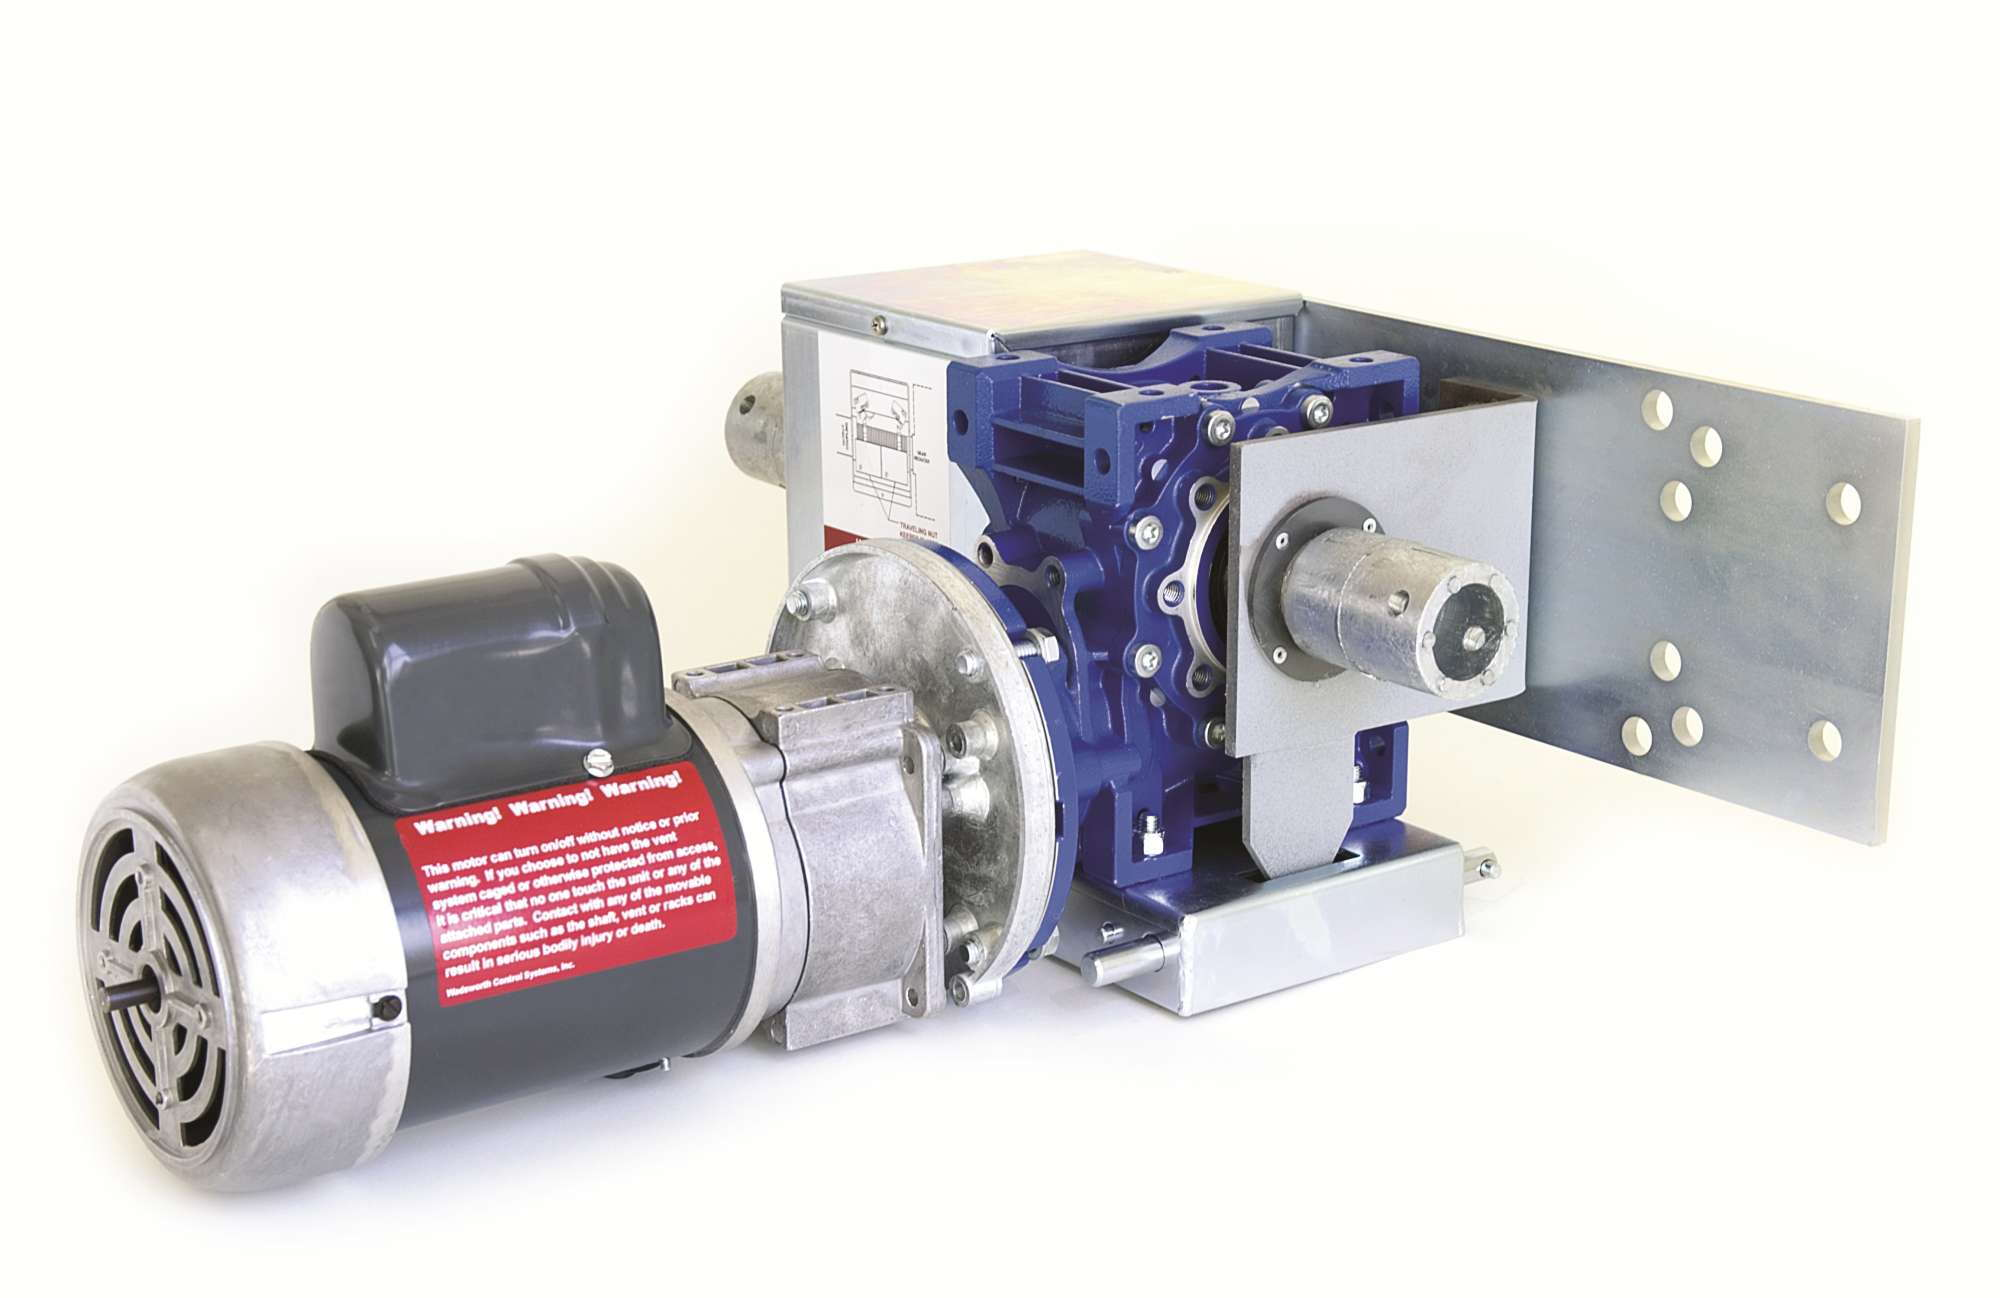 VC2000 Vent Drive And Controls From Wadsworth Controls Systems